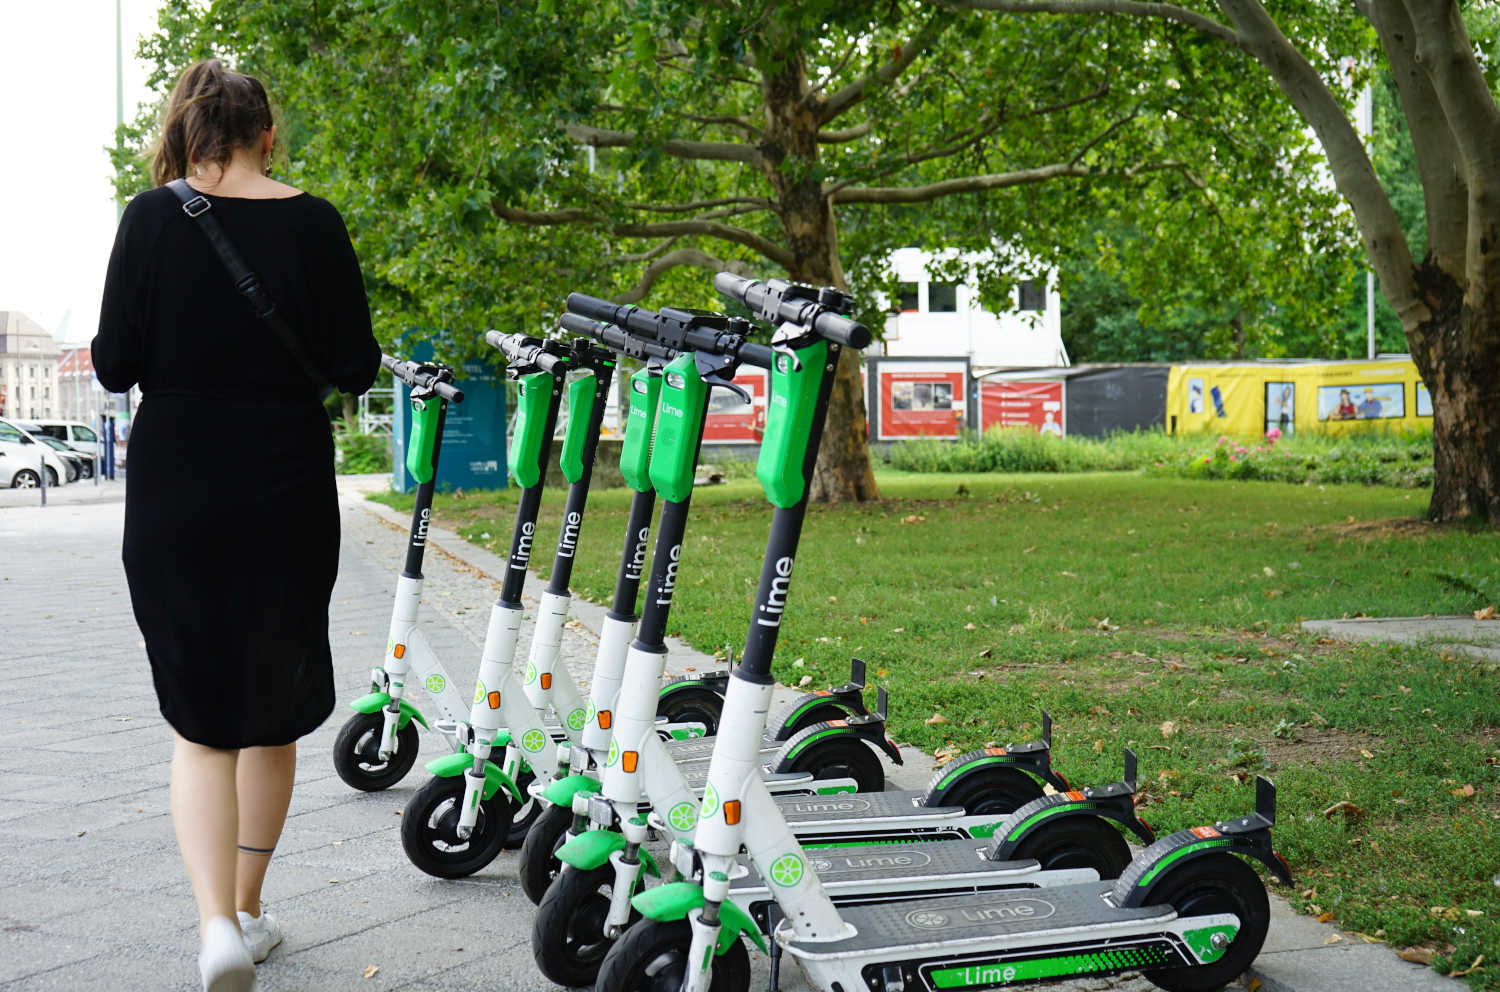 A woman walks past a fleet of dockless Lime e-scooters lined up on the pavement